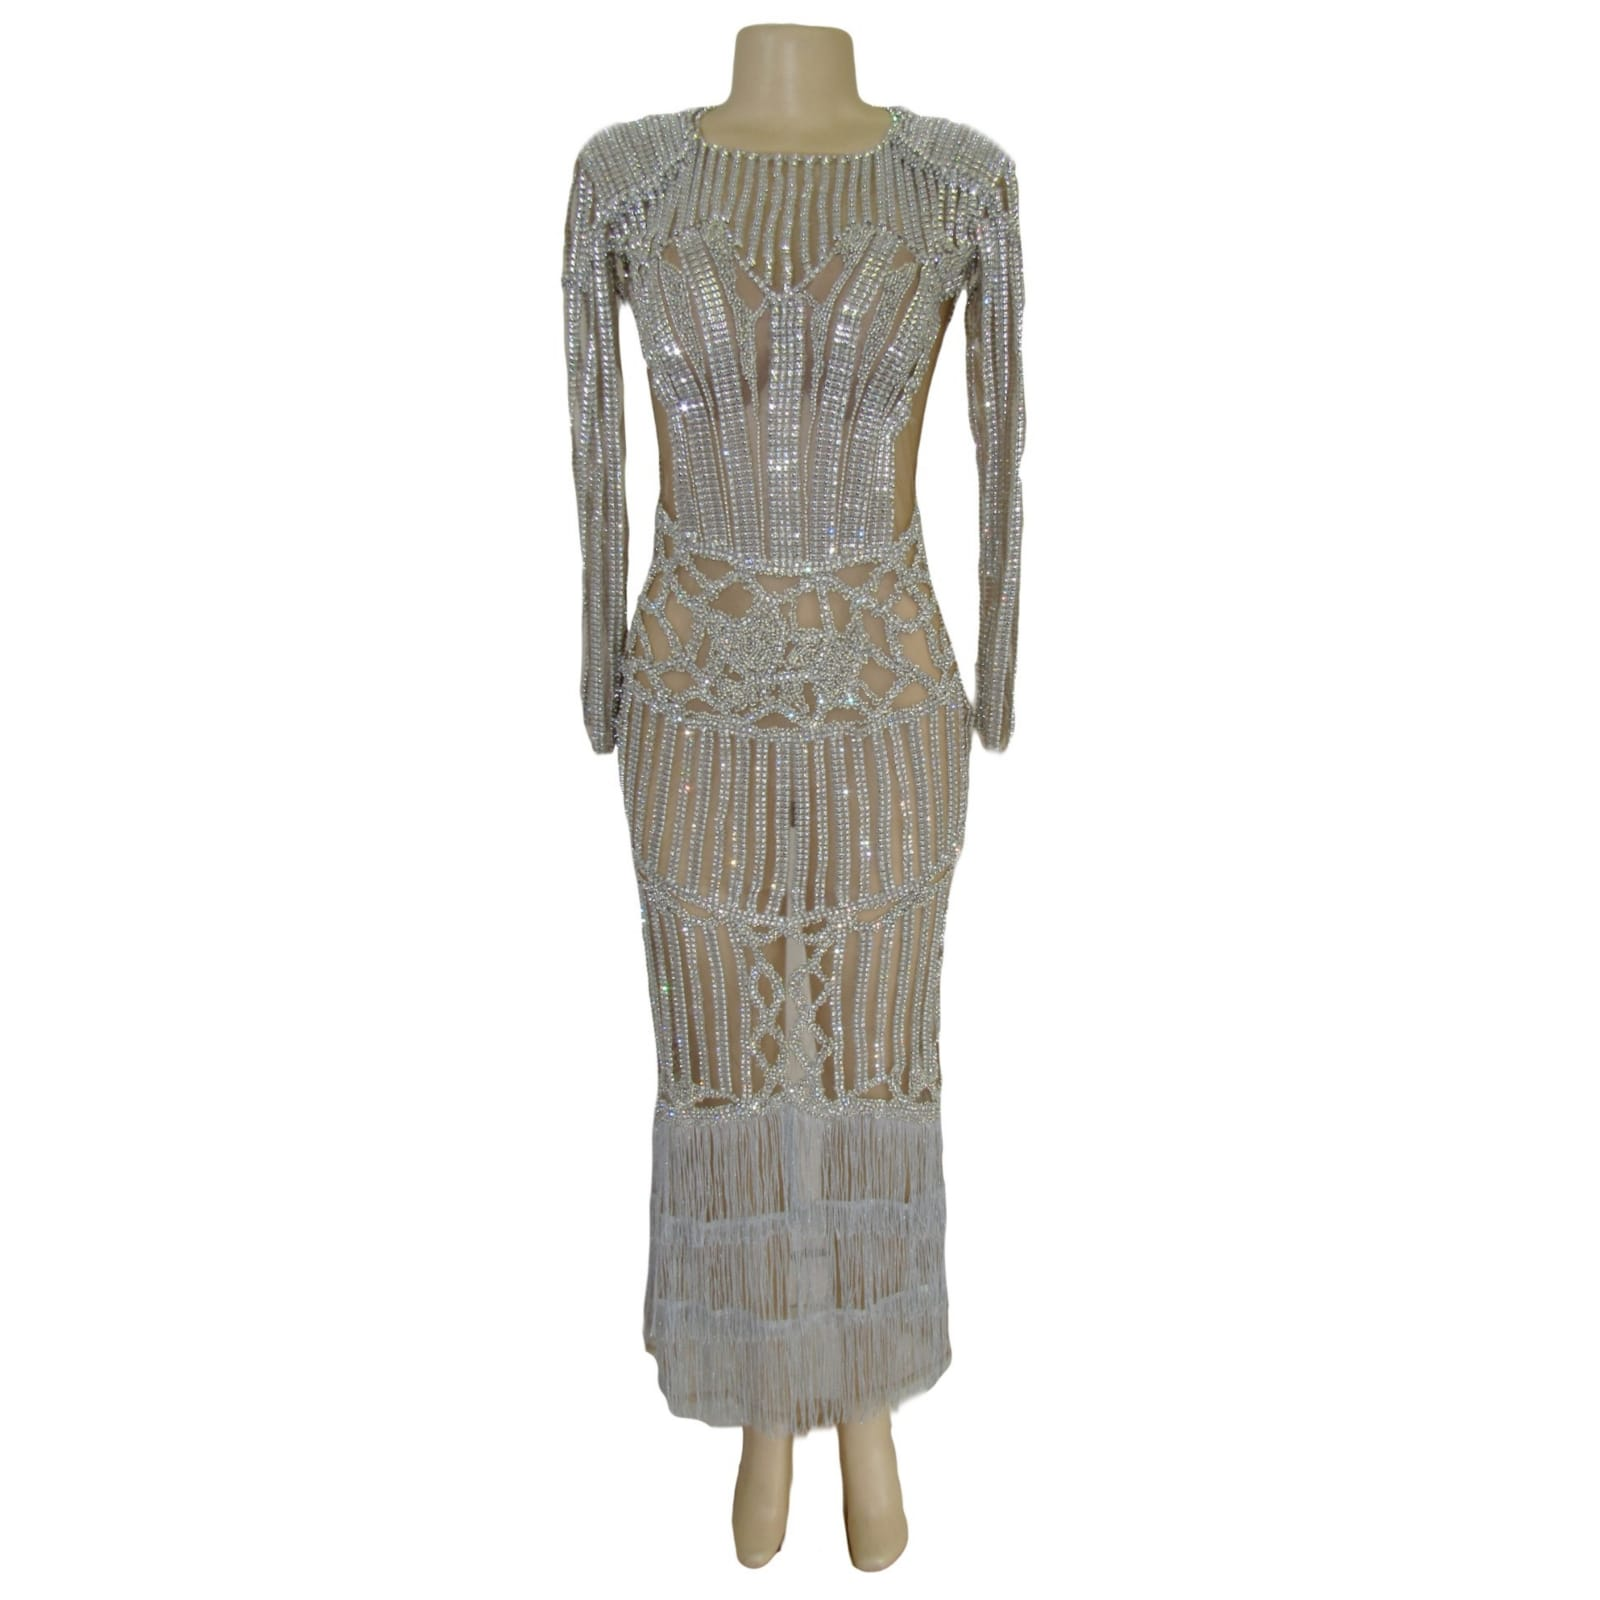 Long sheer fully beaded matric farewell dress with long sleeves 6 long sheer fully beaded matric farewell dress with long sleeves, tassels and a back high slit. With padded shoulders.